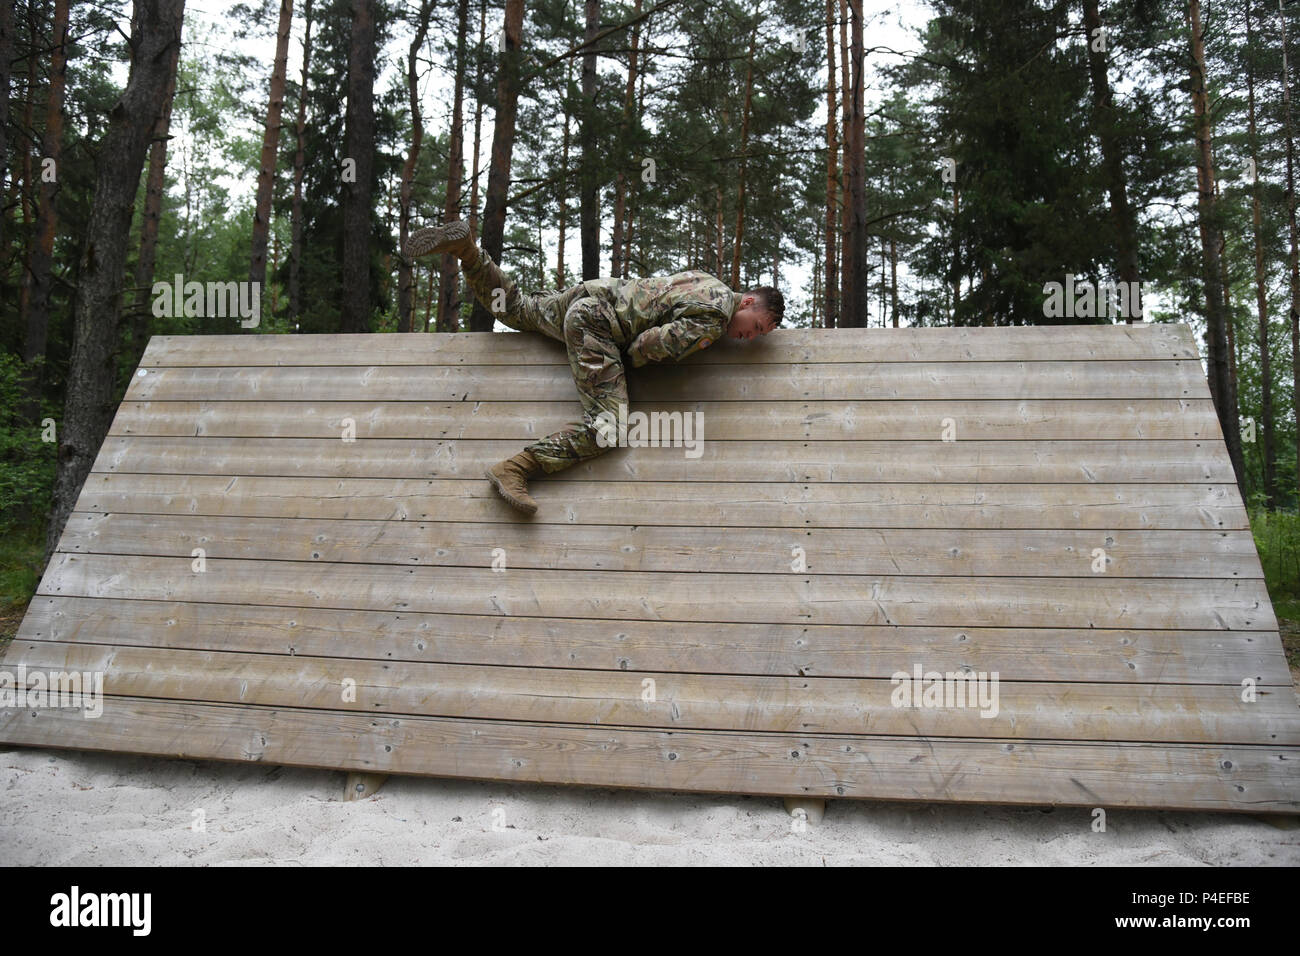 U.S. Army Spc. Derek Teegardin with 1st Battalion, 4th Infantry Regiment, Joint Multinational Readiness Center, 7th Army Training Command (7ATC), jumps over a slanted wall at the obstacle course as part of the 7ATC Best Warrior Competition June 19, 2018 at Grafenwoehr Training Area, Germany. Teegardin, a Battle Creek, MI native is competing in the three-day event ending June 21 with the announcement of the 7ATC Officer, Noncommissioned Officer and Soldier of the Year. The winners will move on to compete in the U.S. Army Europe Best Warrior Competition. (U.S. Army photo by Markus Rauchenberger) - Stock Image